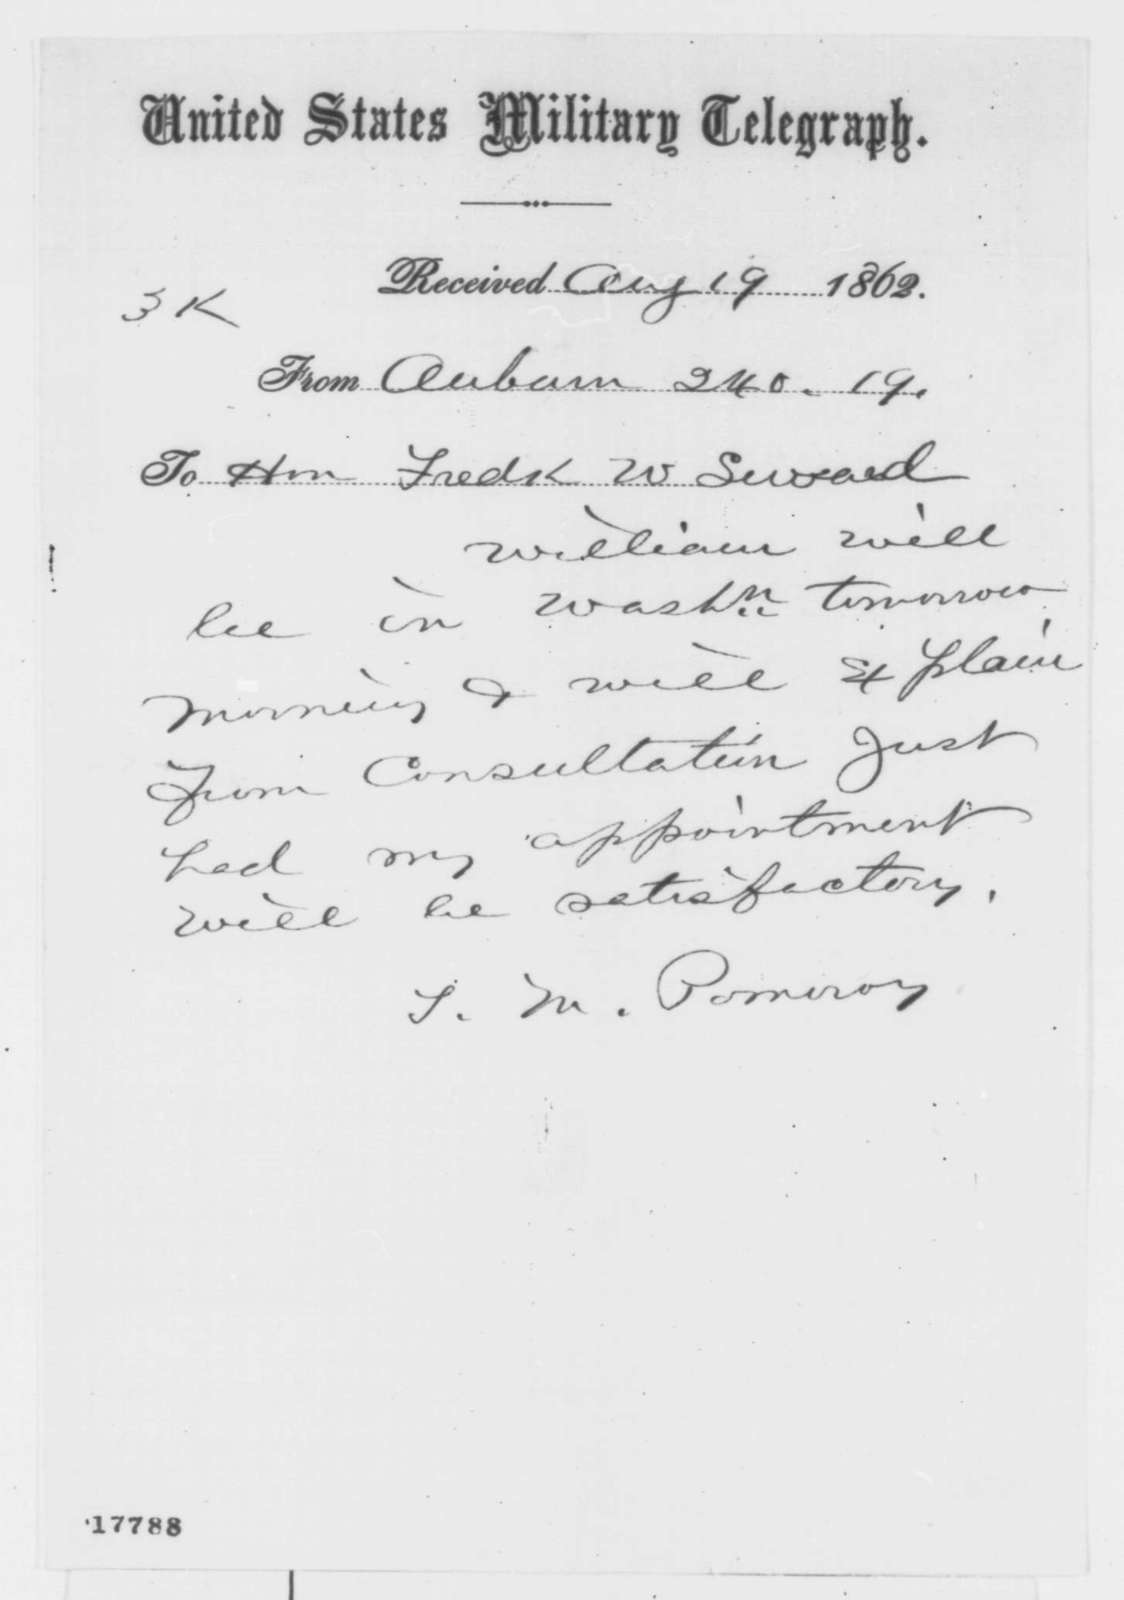 Theodore M. Pomeroy to Frederick W. Seward, Tuesday, August 19, 1862  (Telegram concerning appointment)